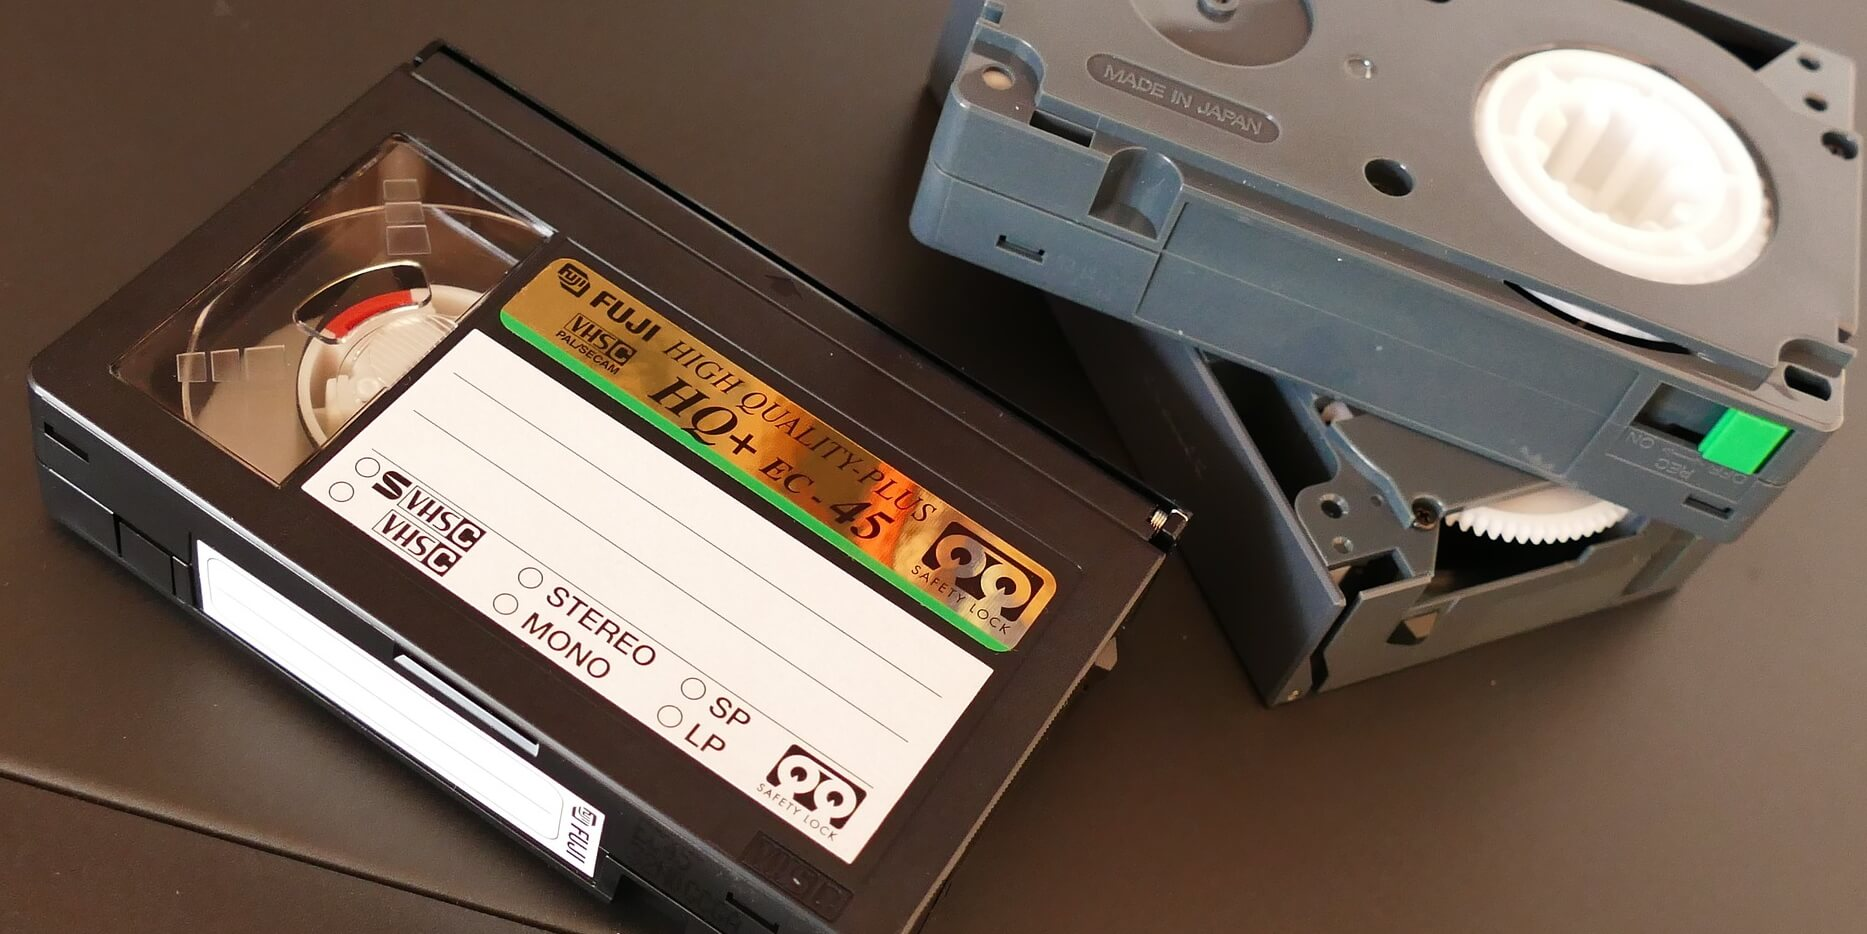 Video tapes for ANPR